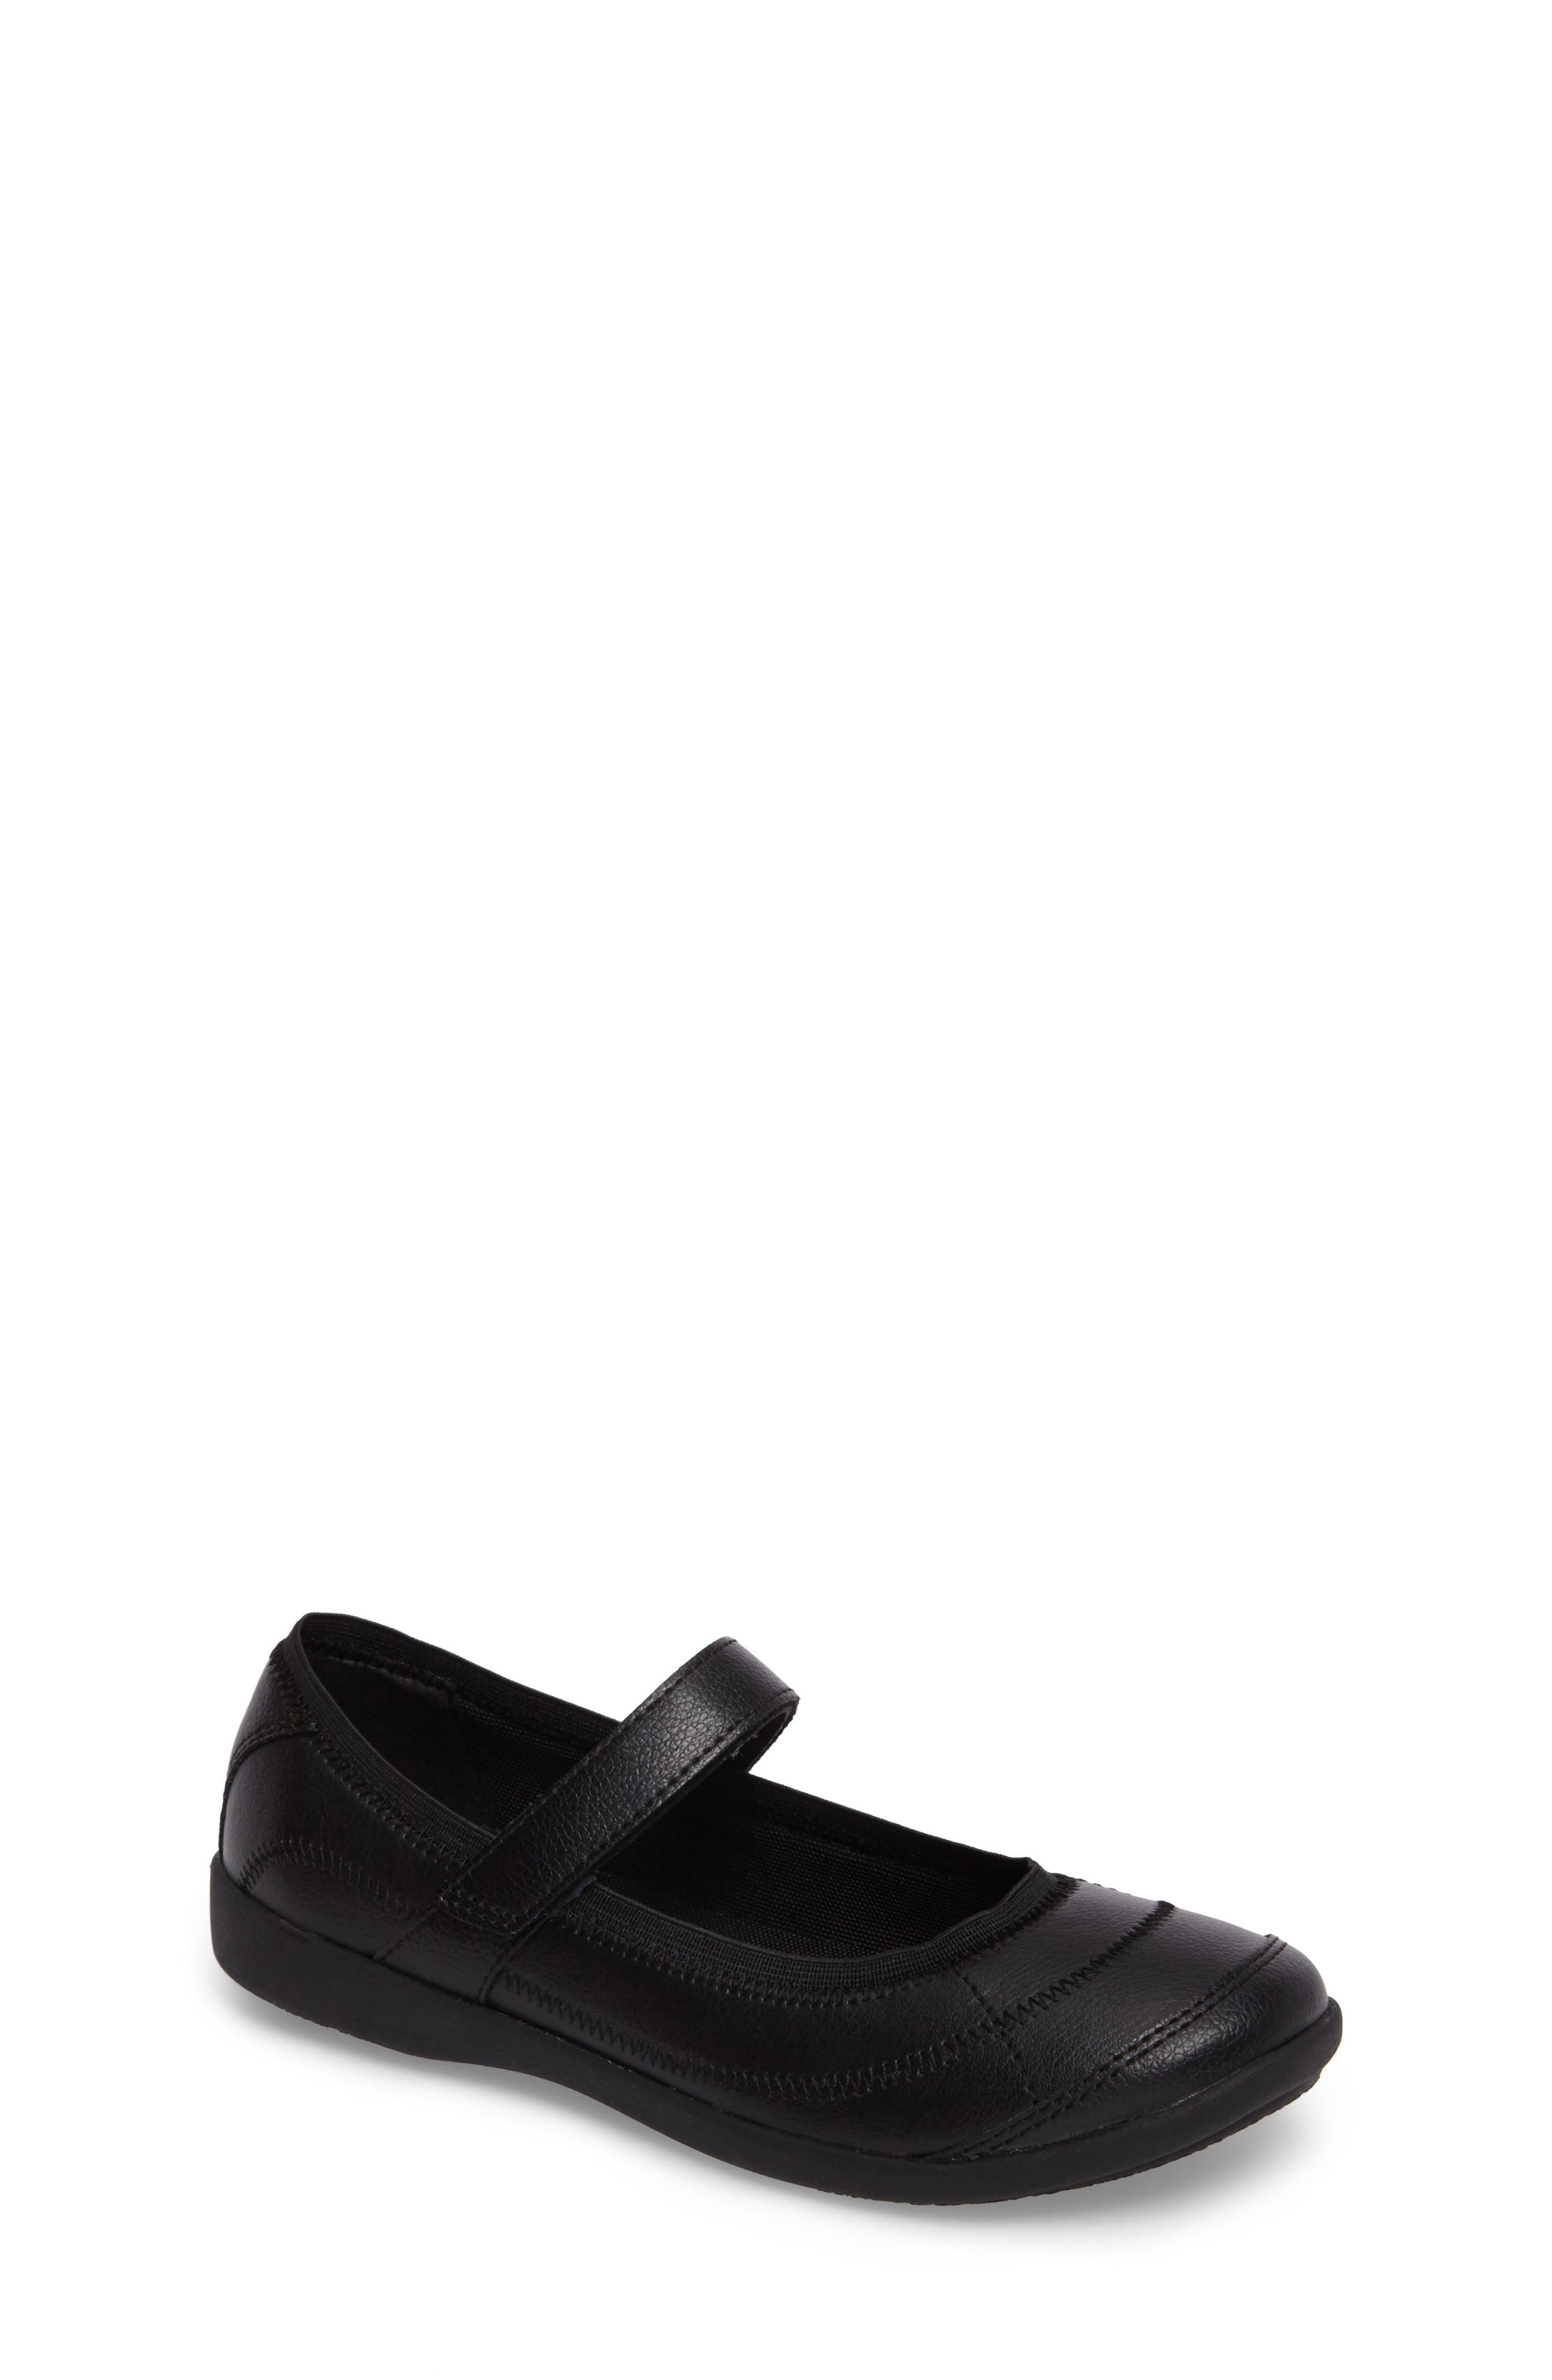 Reese Mary Jane Flat,                             Main thumbnail 1, color,                             BLACK LEATHER